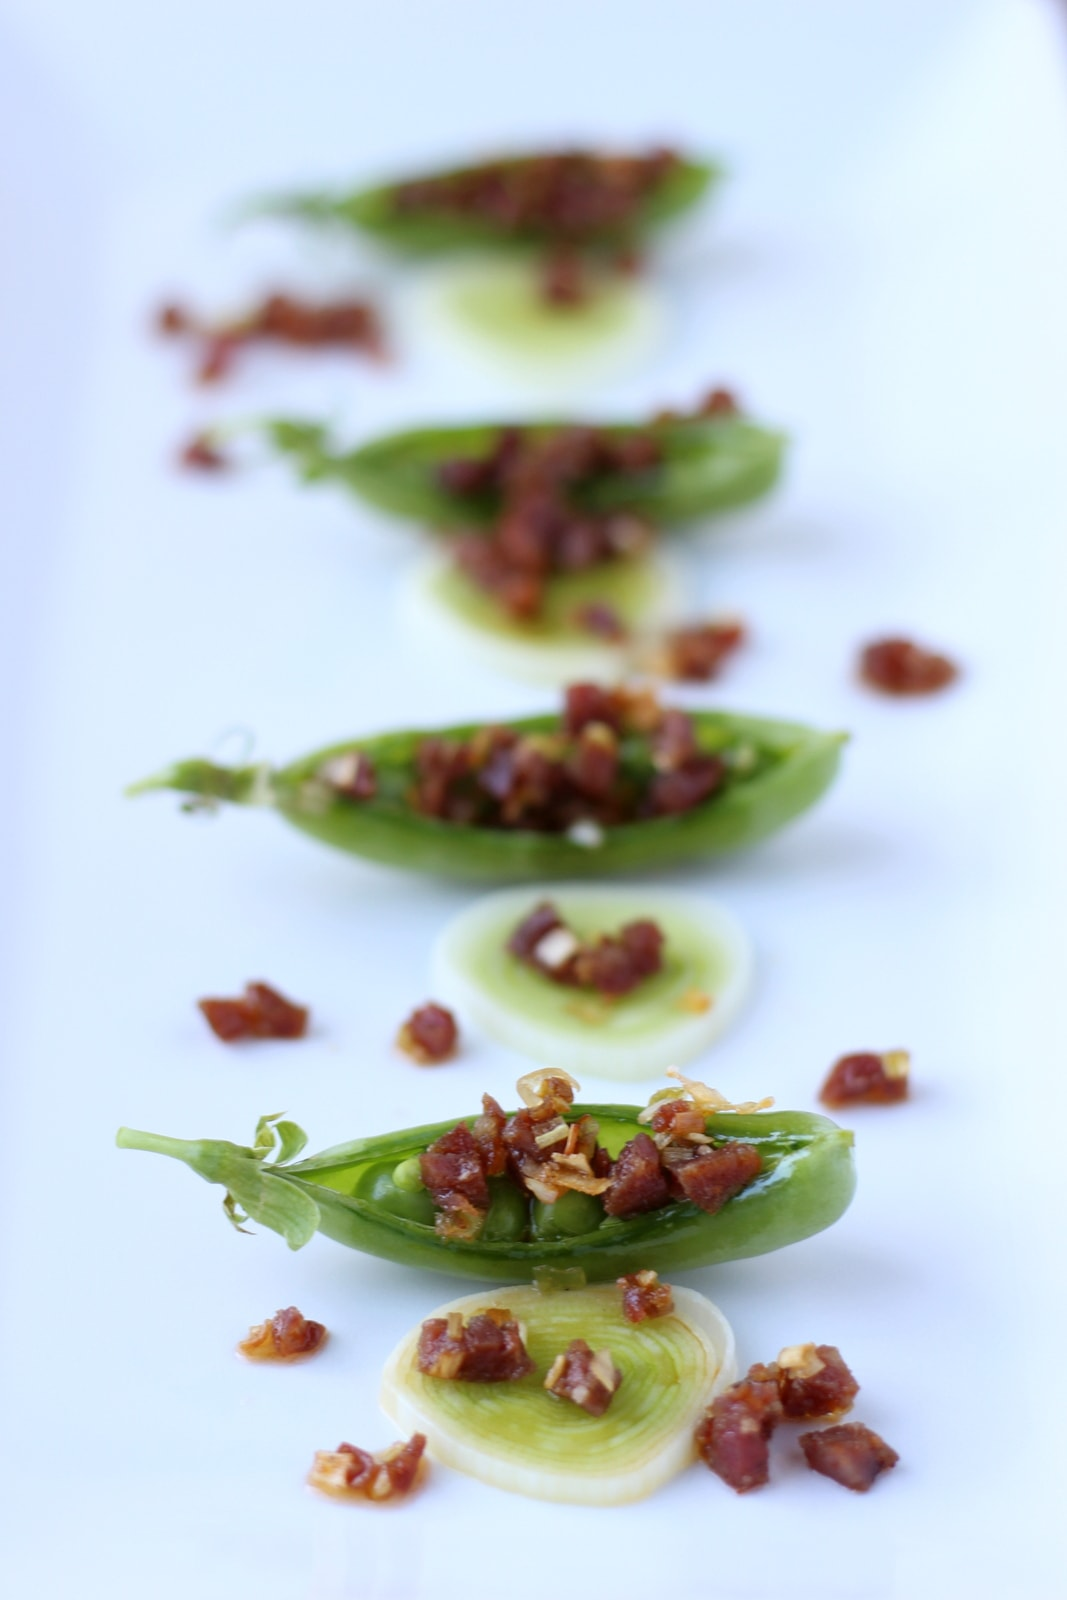 Chorizo and Leek Stuffed Pea Pods - thewoodenskillet.com #appetizer #spanishchorizo